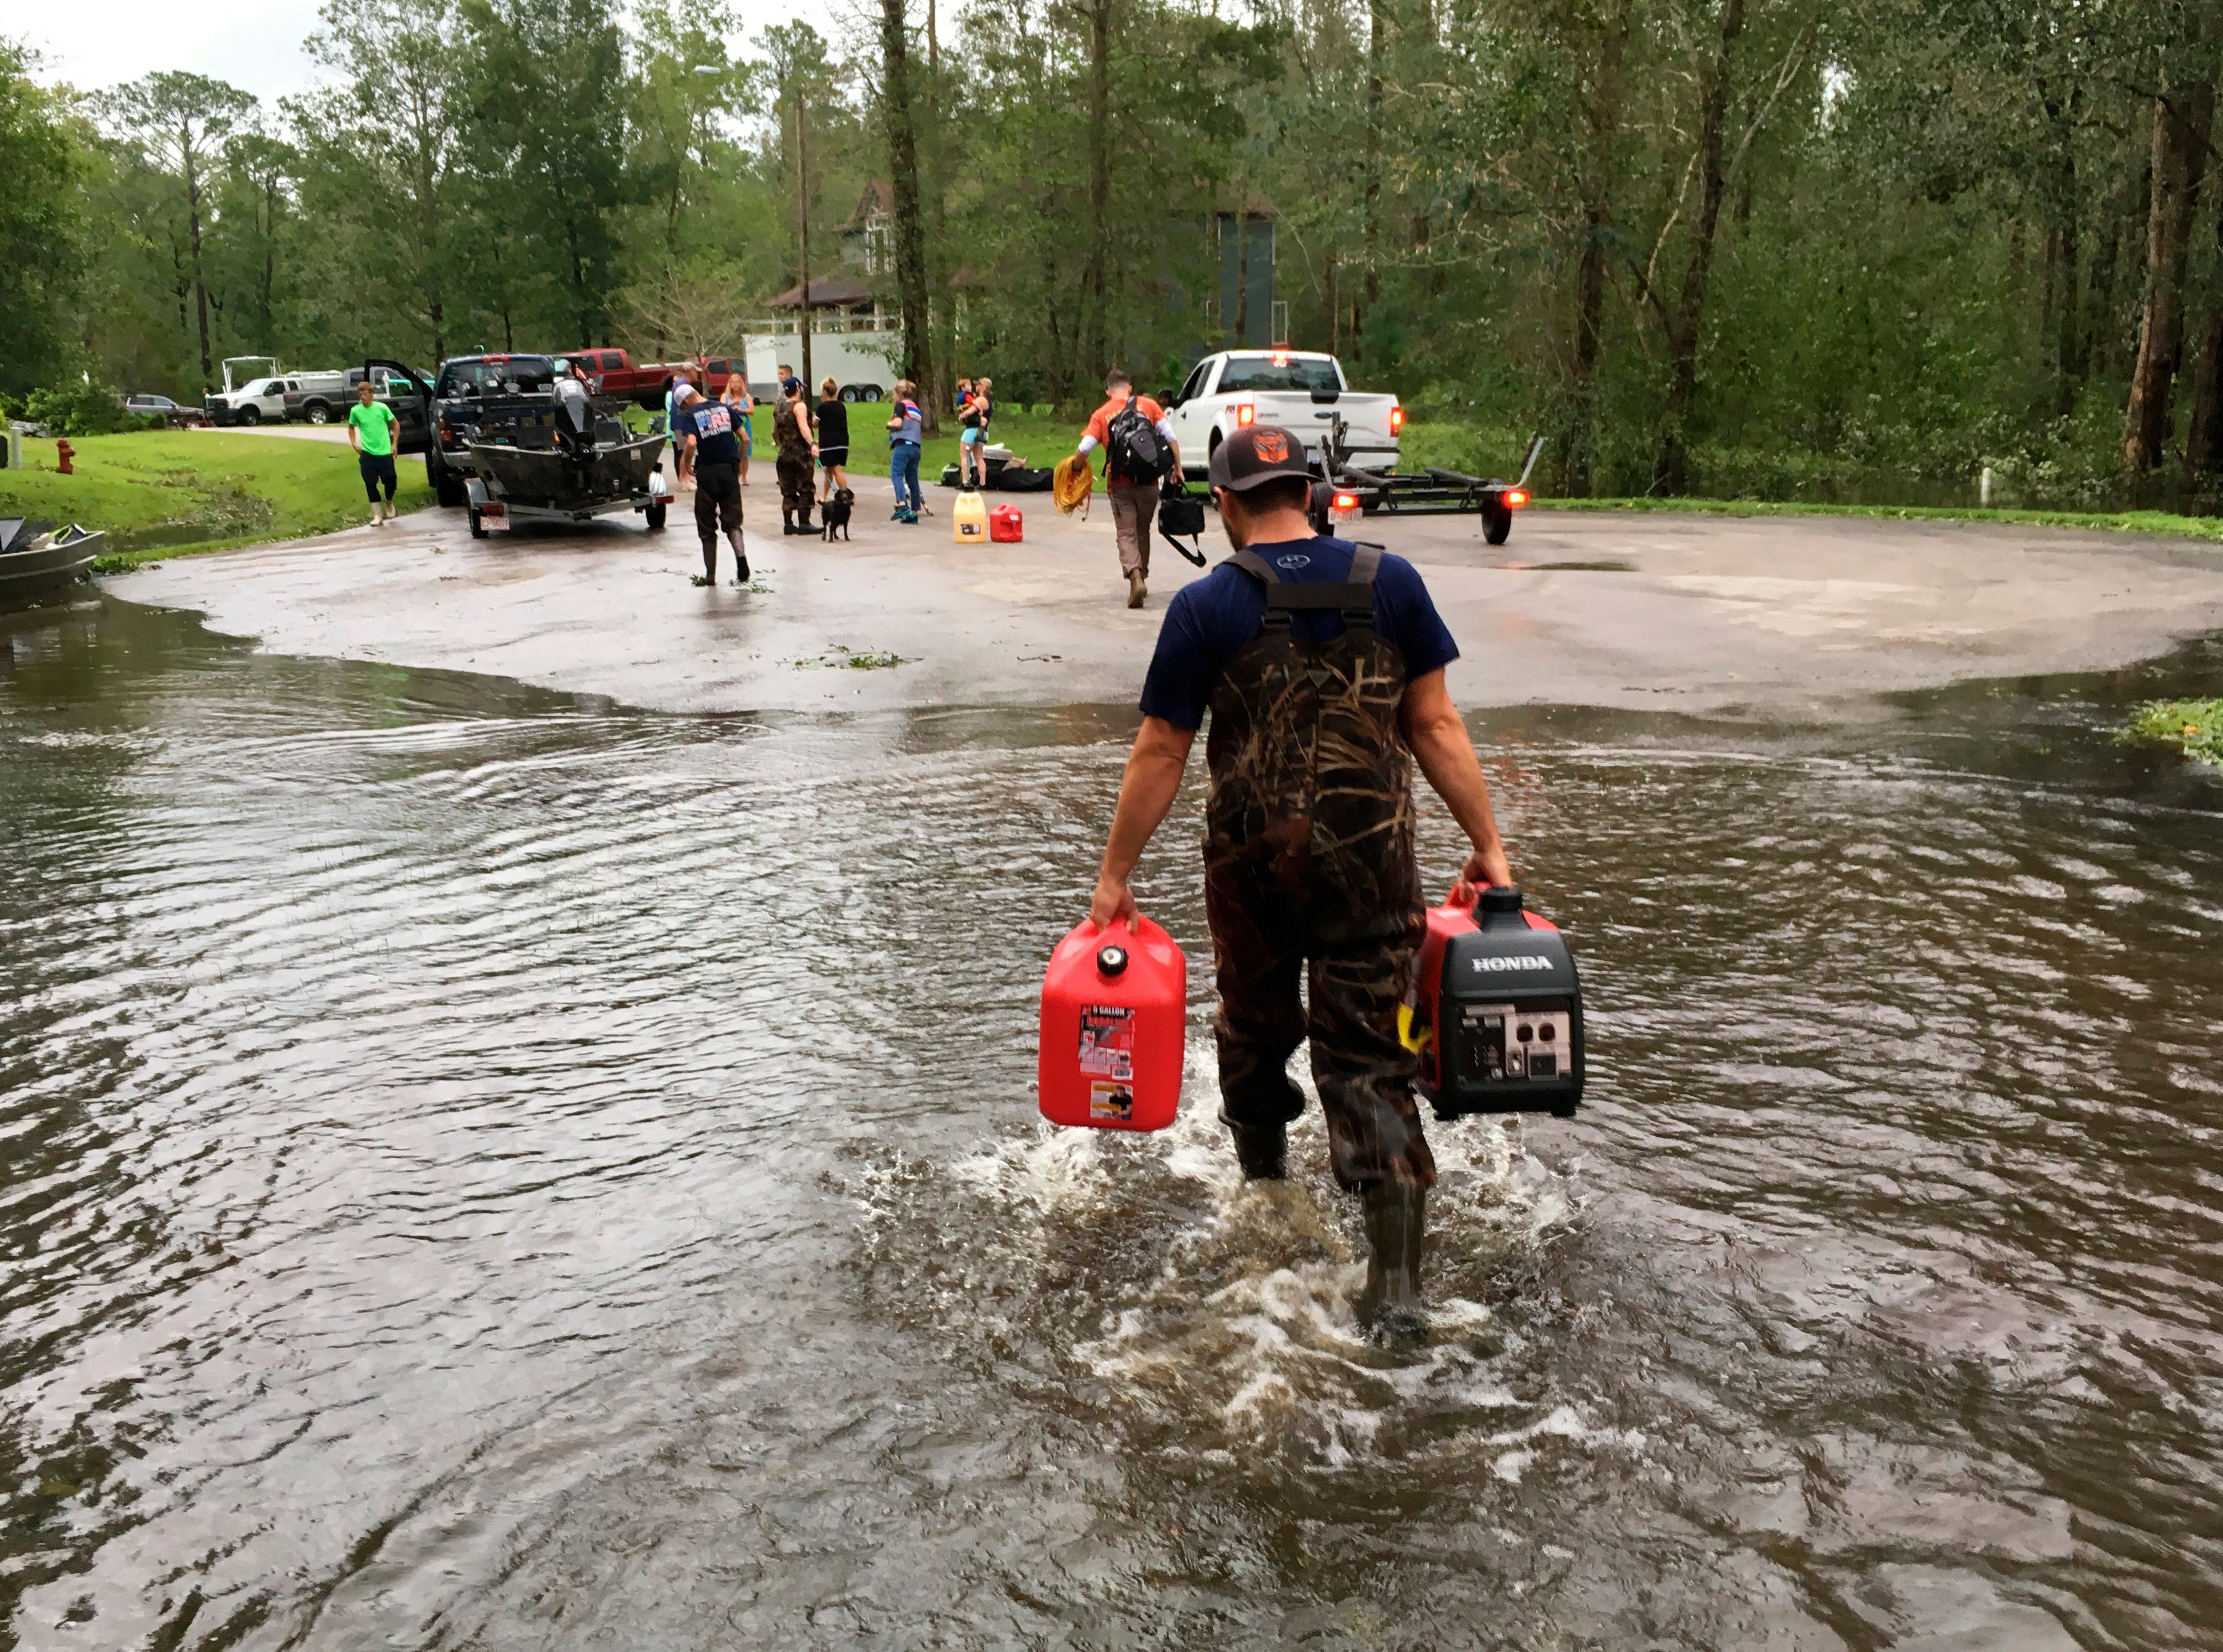 Kevin Knox carries gas and a generator after being rescued from his flooded neighborhood from the effects of Florence, now a tropical storm, in New Bern, N.C., on Saturday, Sept. 15, 2018.